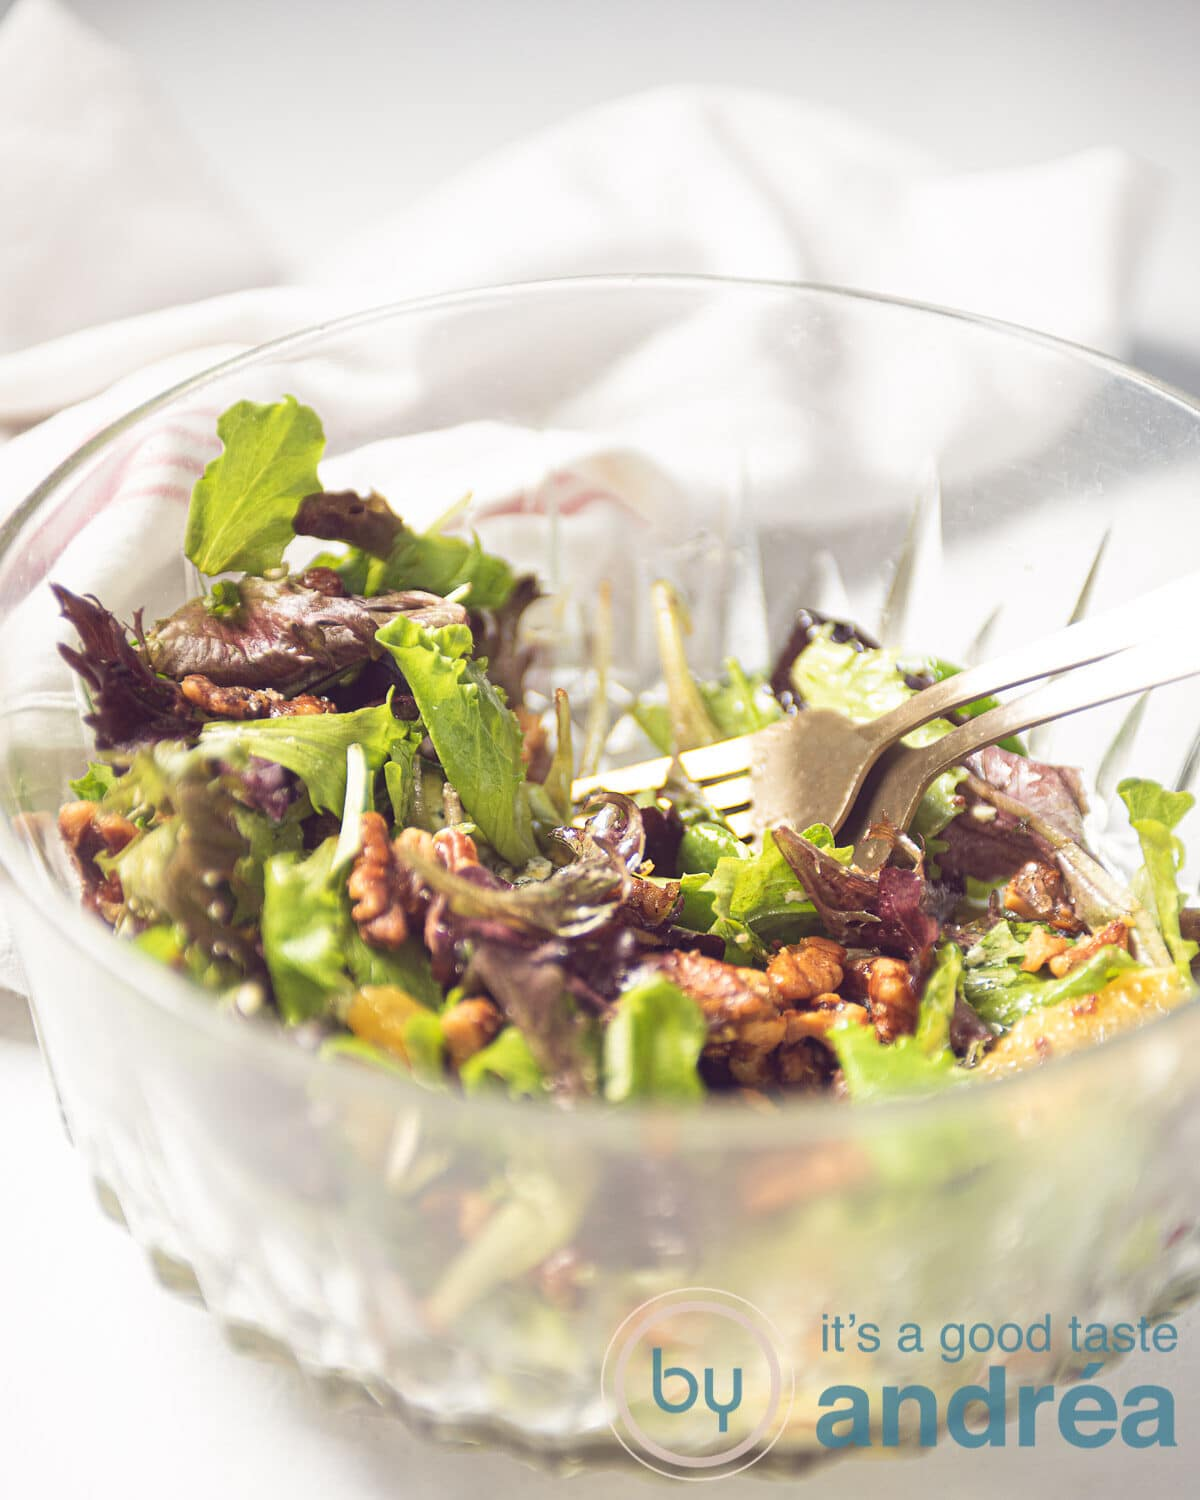 a glass bowl filled with a salad with oranges, walnuts, and blue cheese